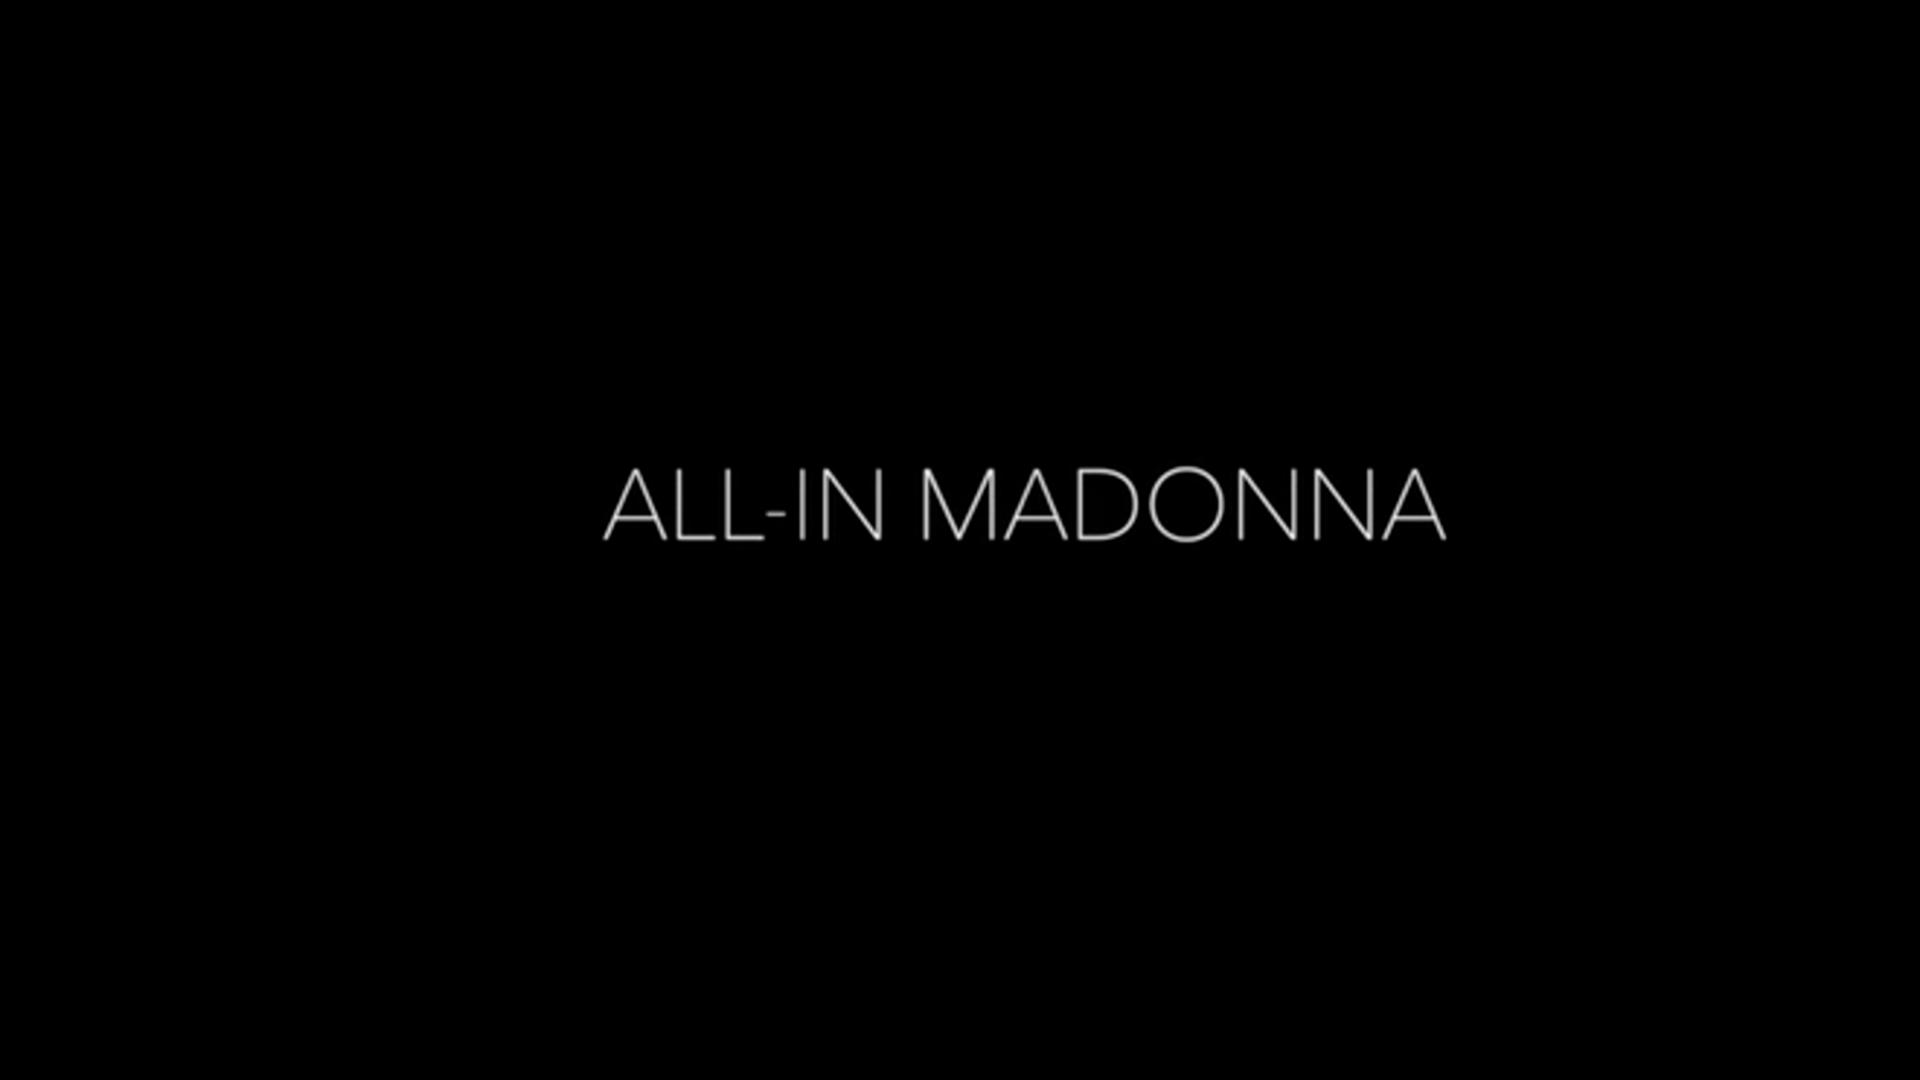 All-in Madonna (Feature)